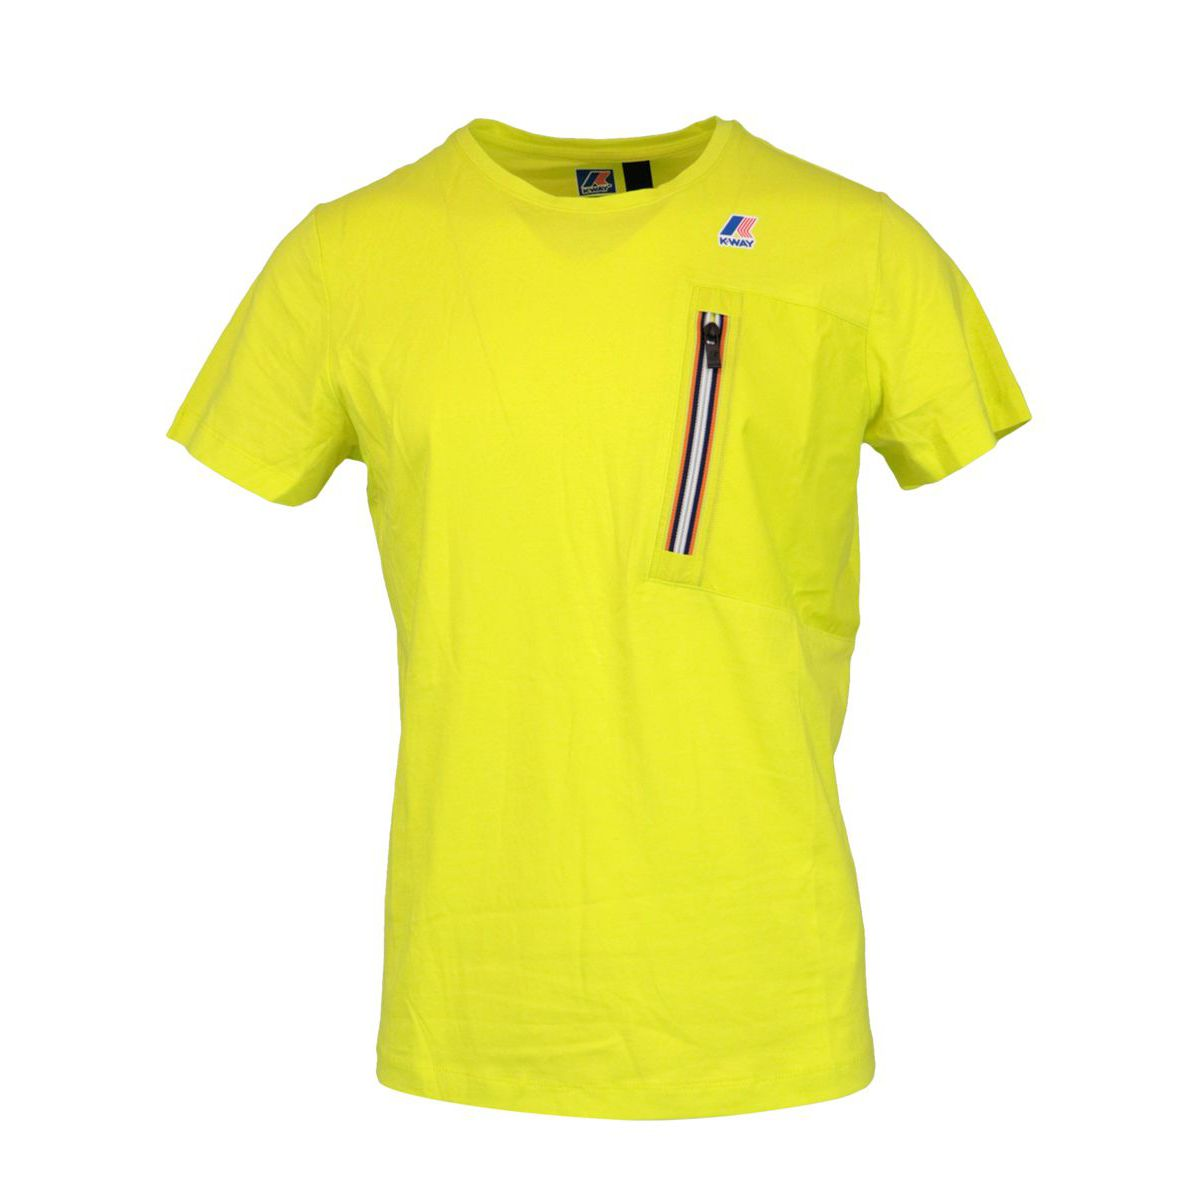 Le Vrai Isaie cotton t-shirt with oblique zip Lime K-Way